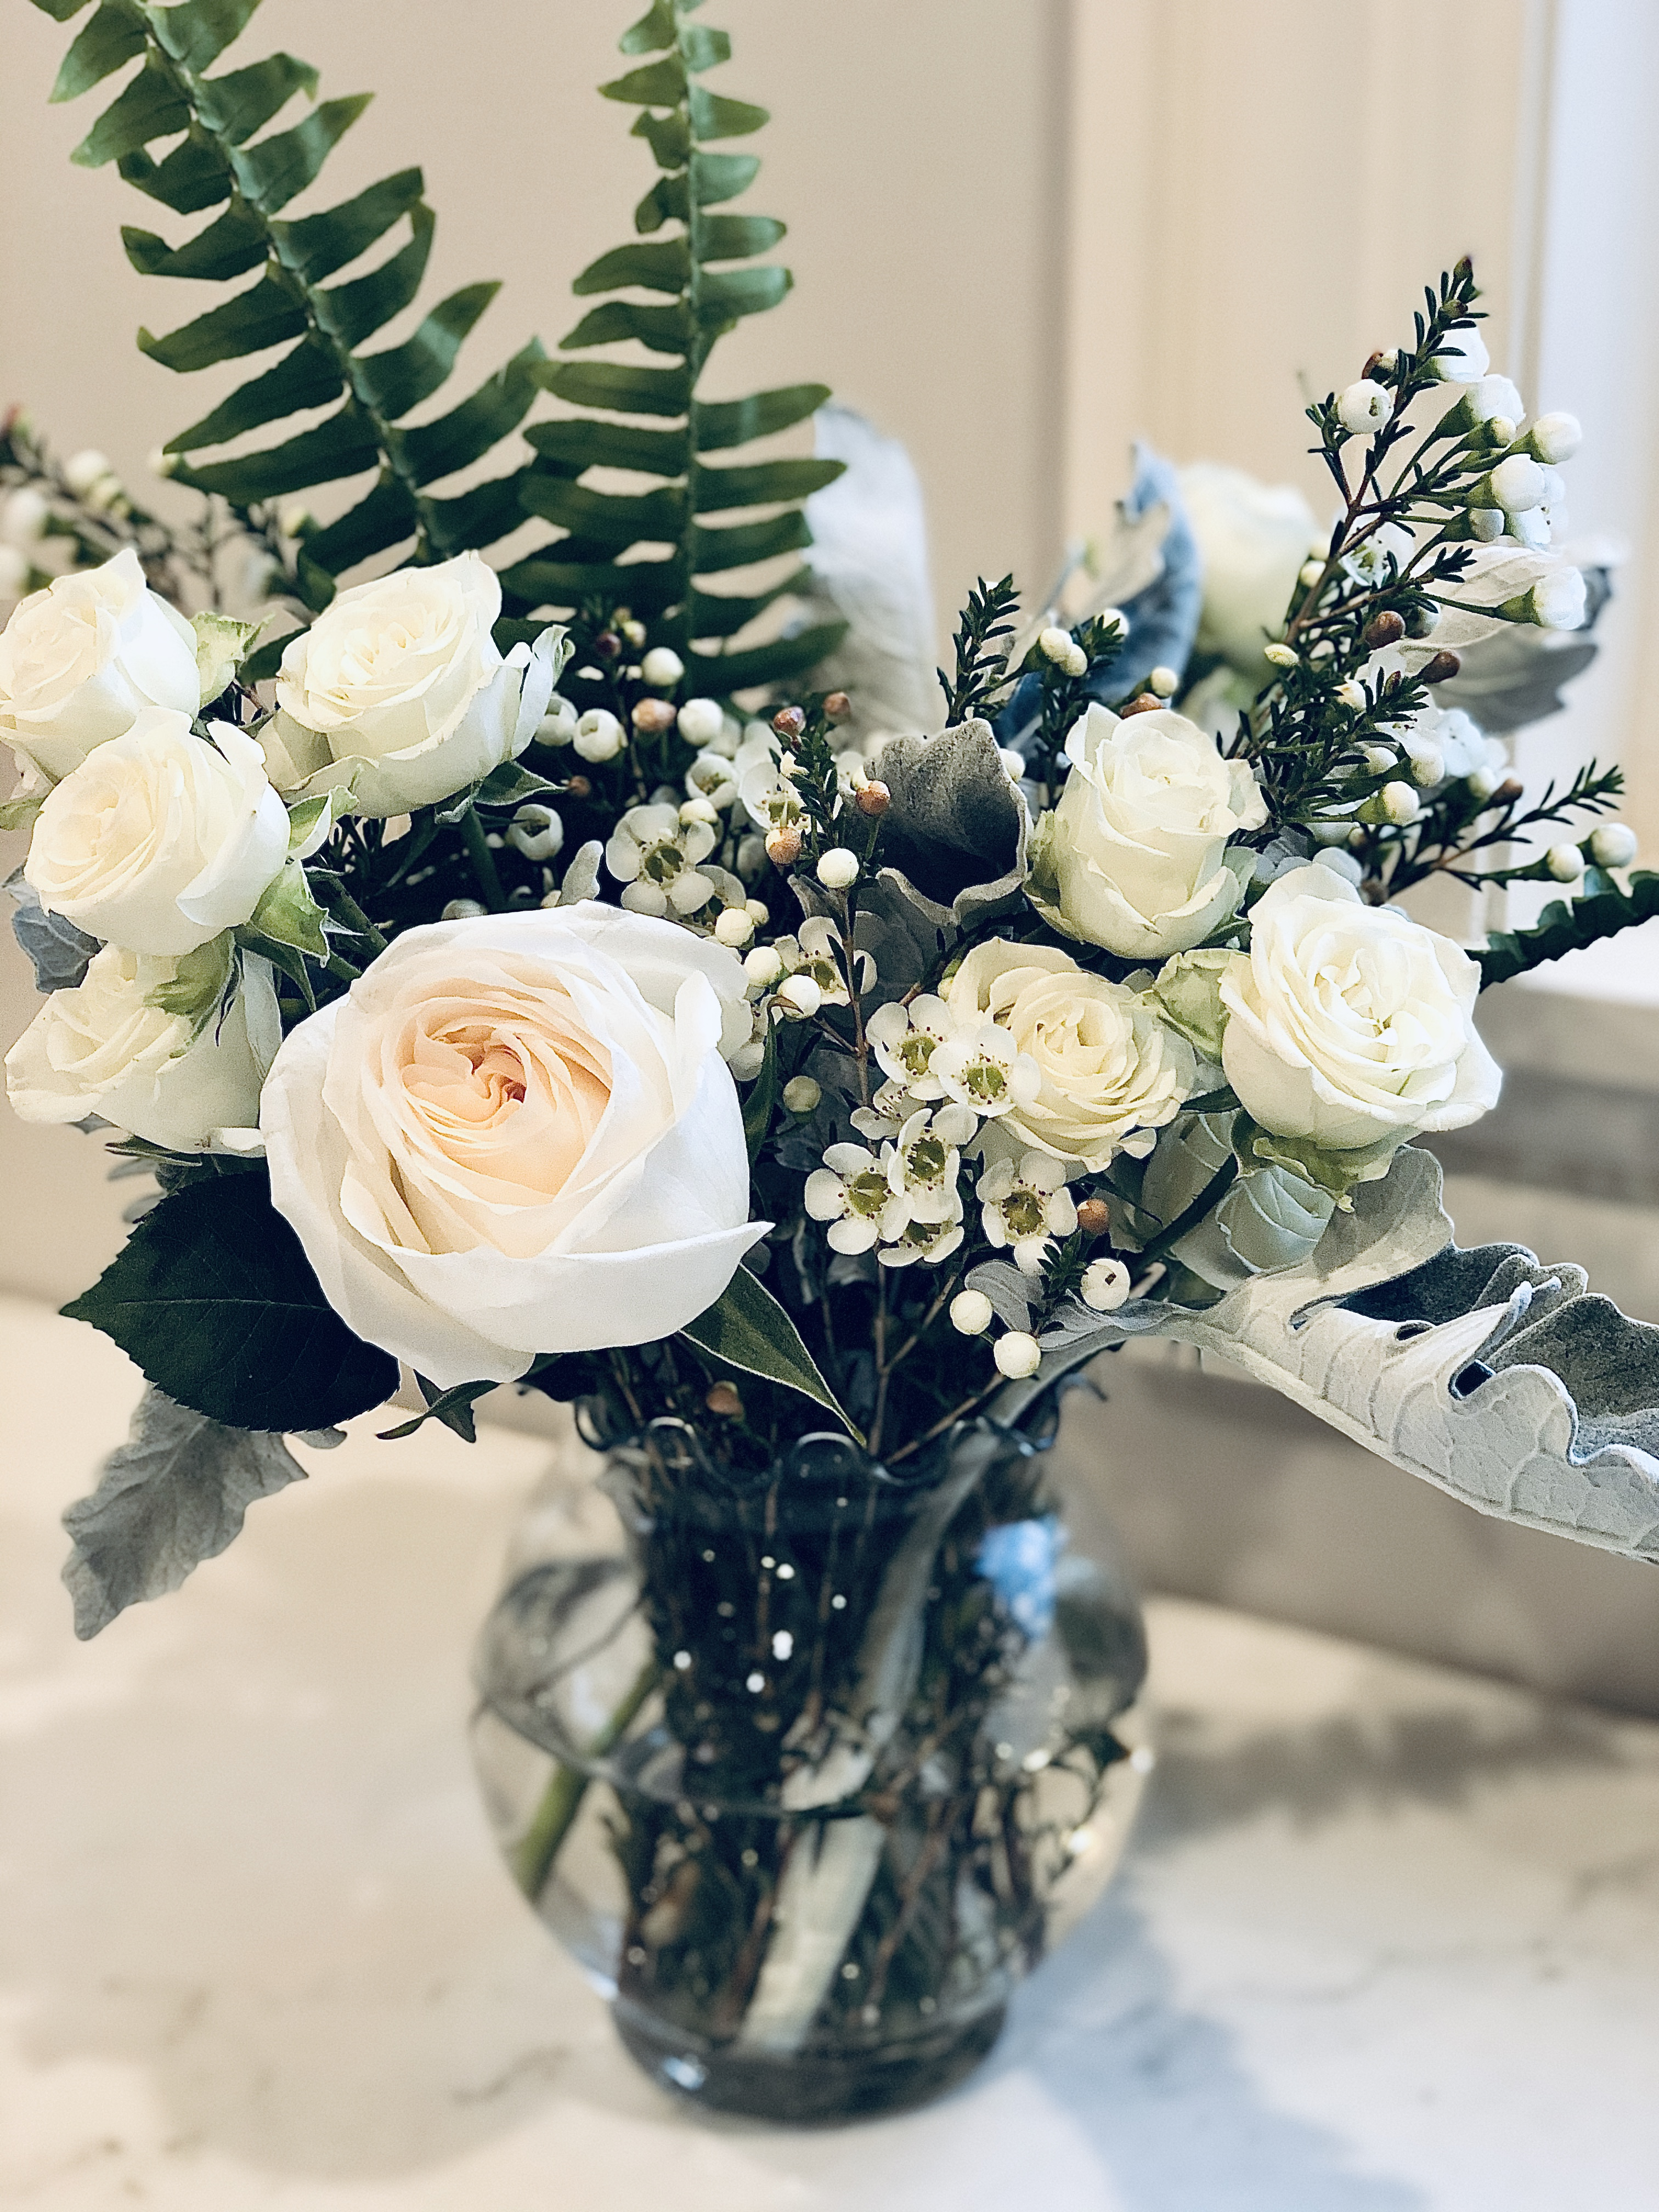 White Roses, Touch of Blush in Vase